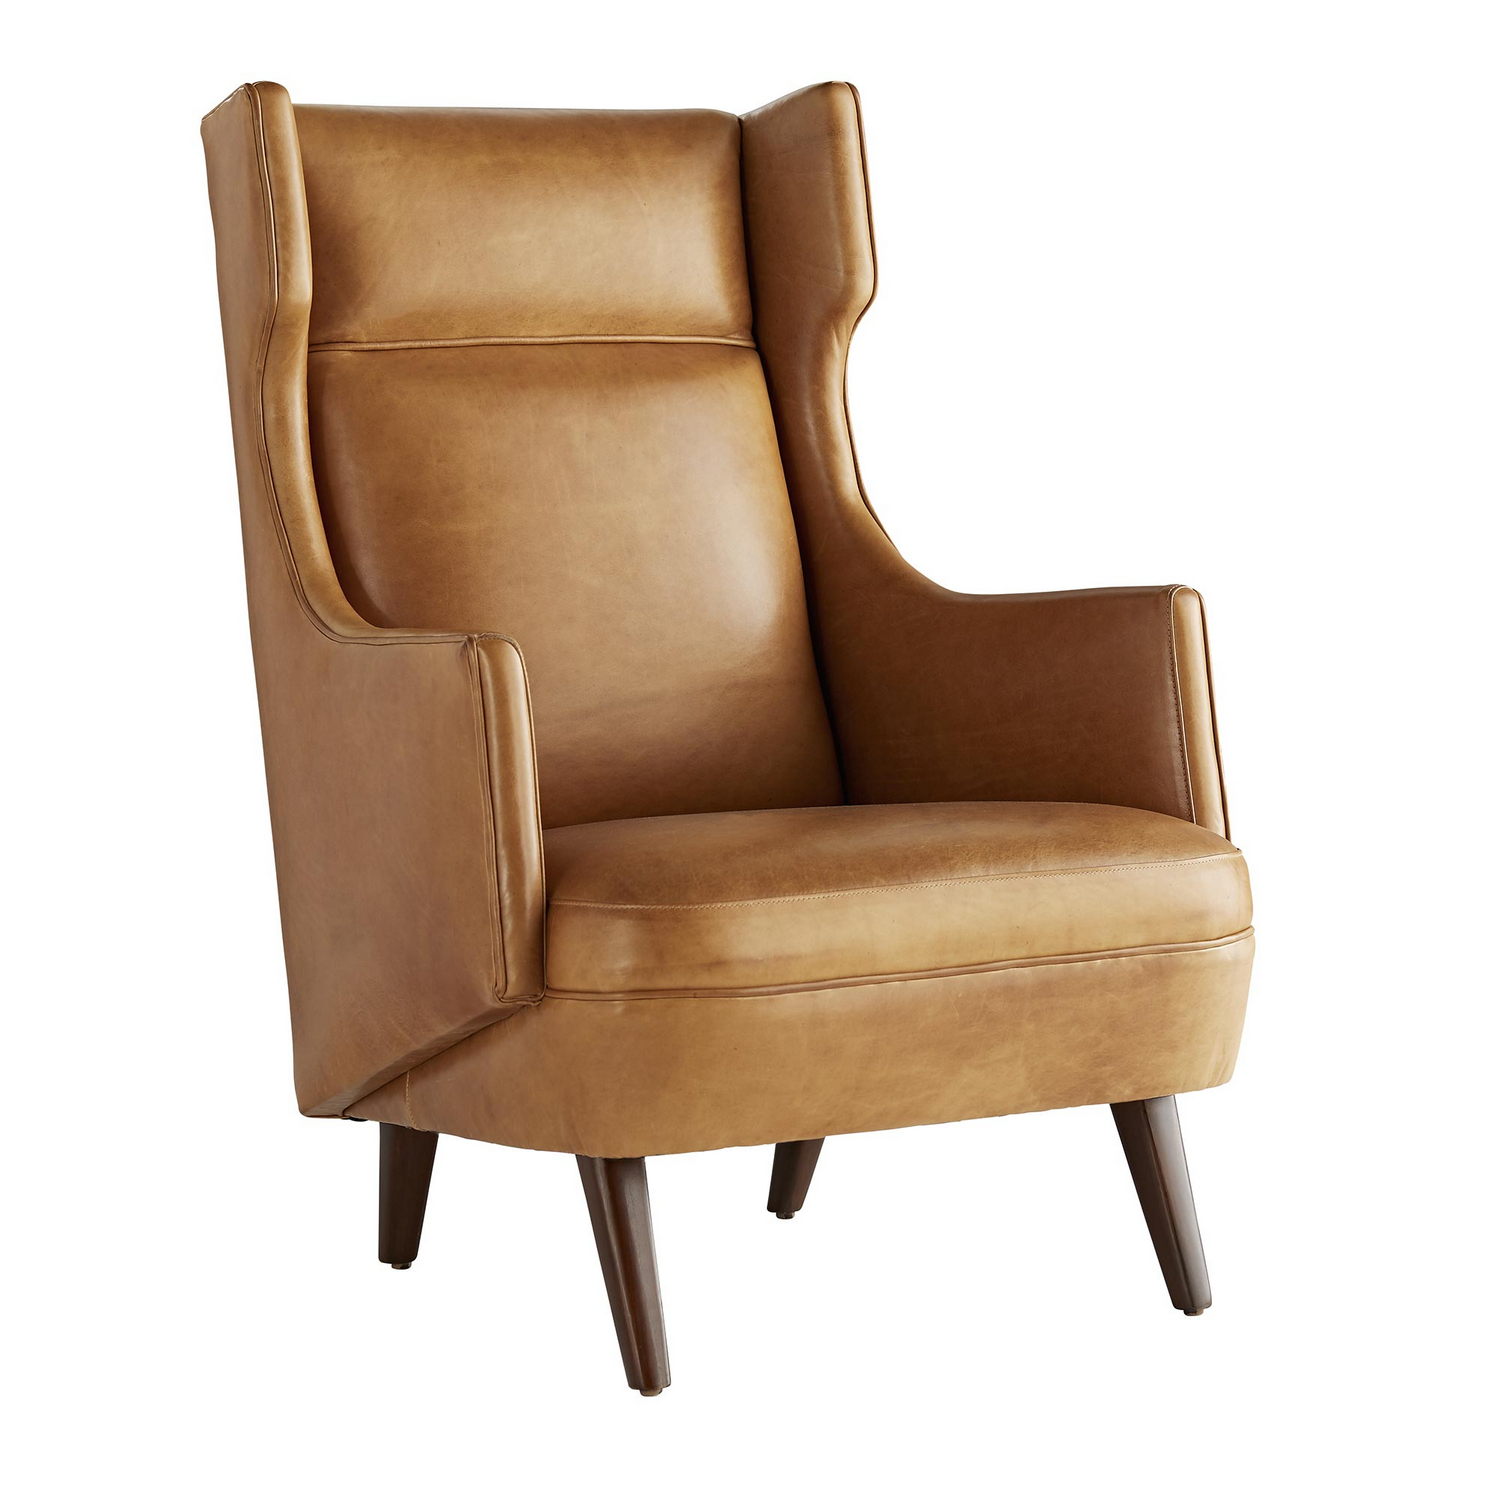 Chair by Arteriors 8091